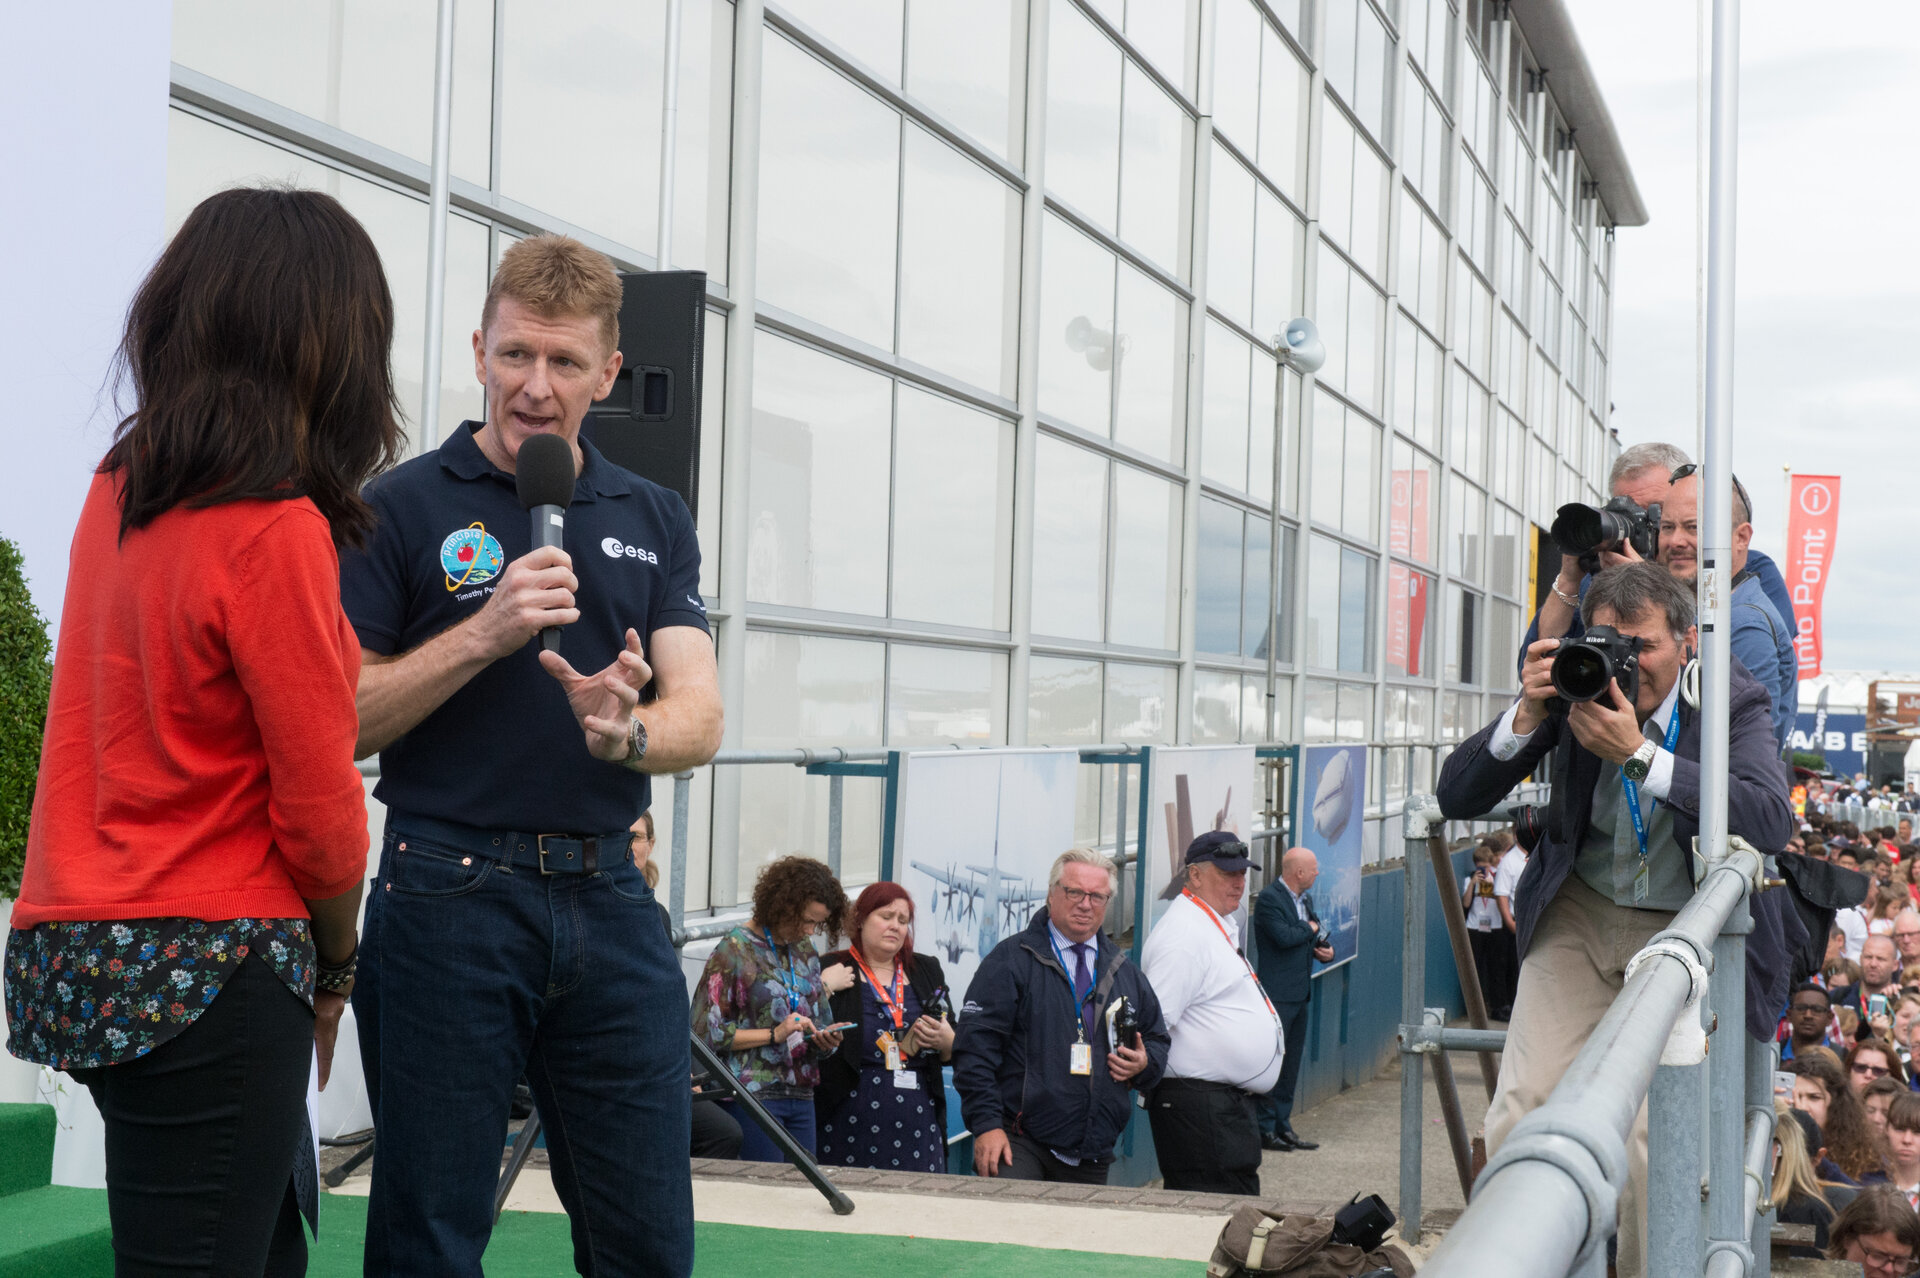 Tim Peake on the balcony at Farnborough Airshow 2016